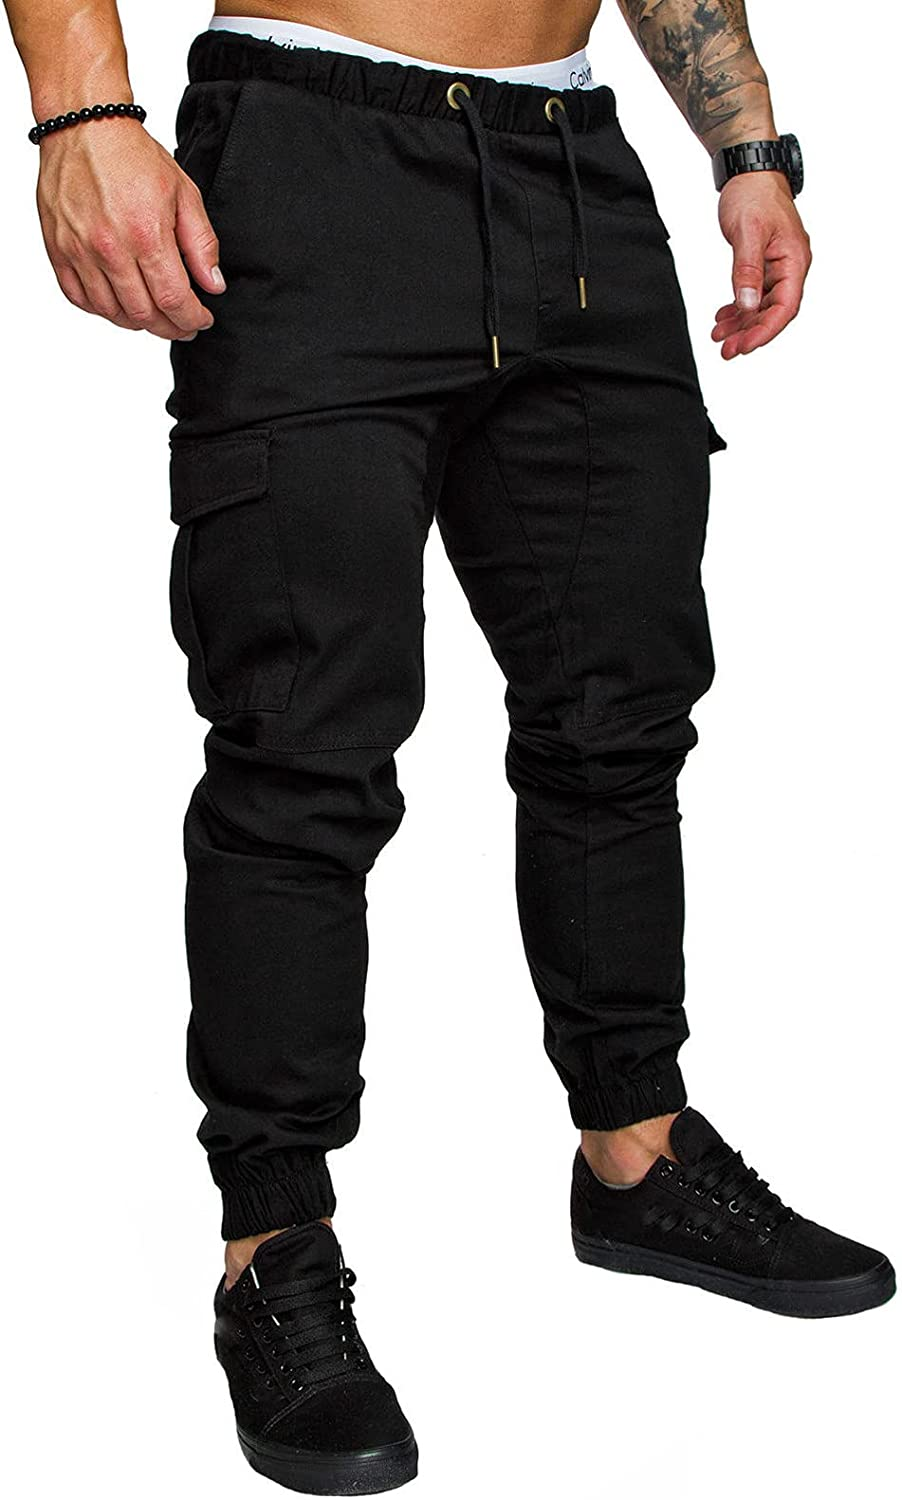 raillery Men's Cotton Cargo Pants Jogger Slim Casual High quality Fit Superior